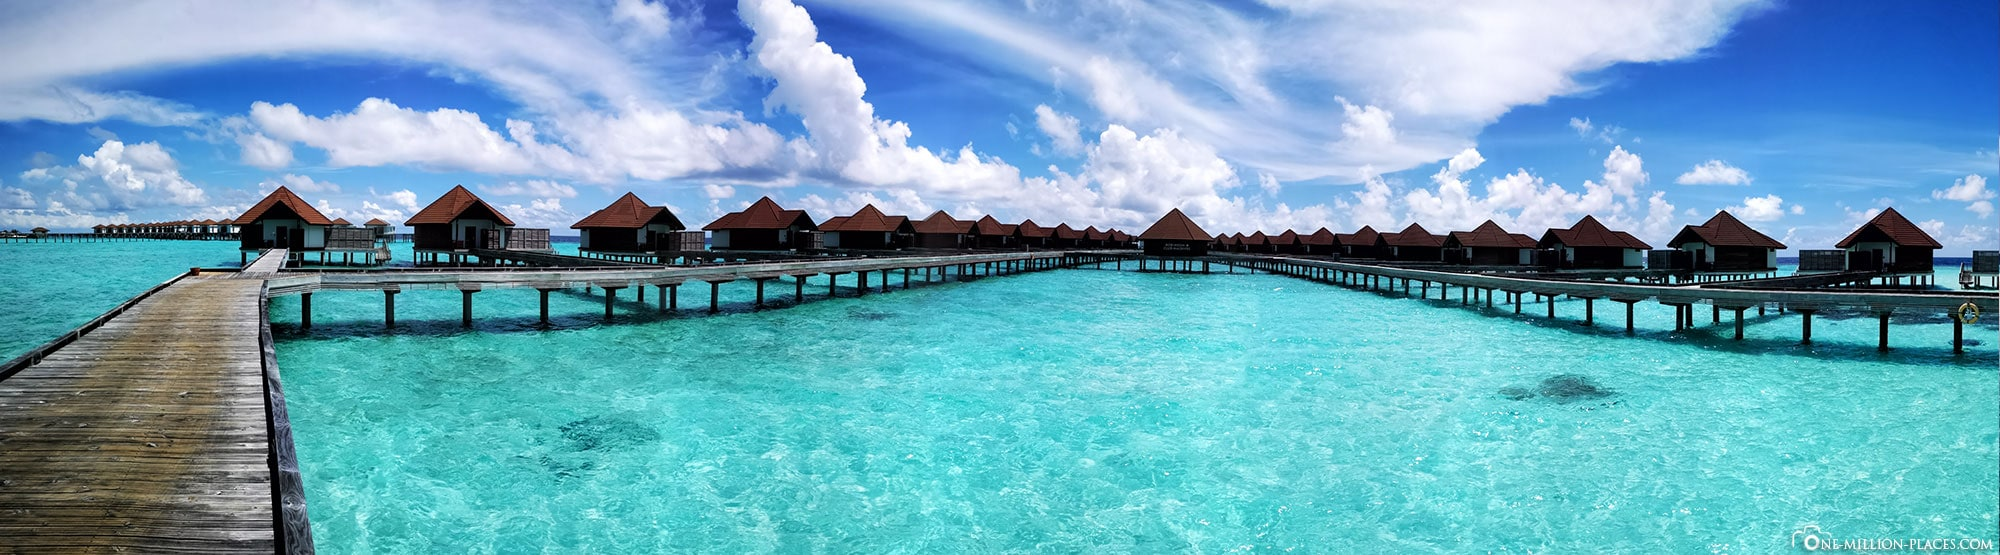 Panoramic view, Water Bungalow, Overwater Bungalow, BUM2, ROBINSON Club Maldives, Maldives, Gaaf Alif Atoll, Travelreport